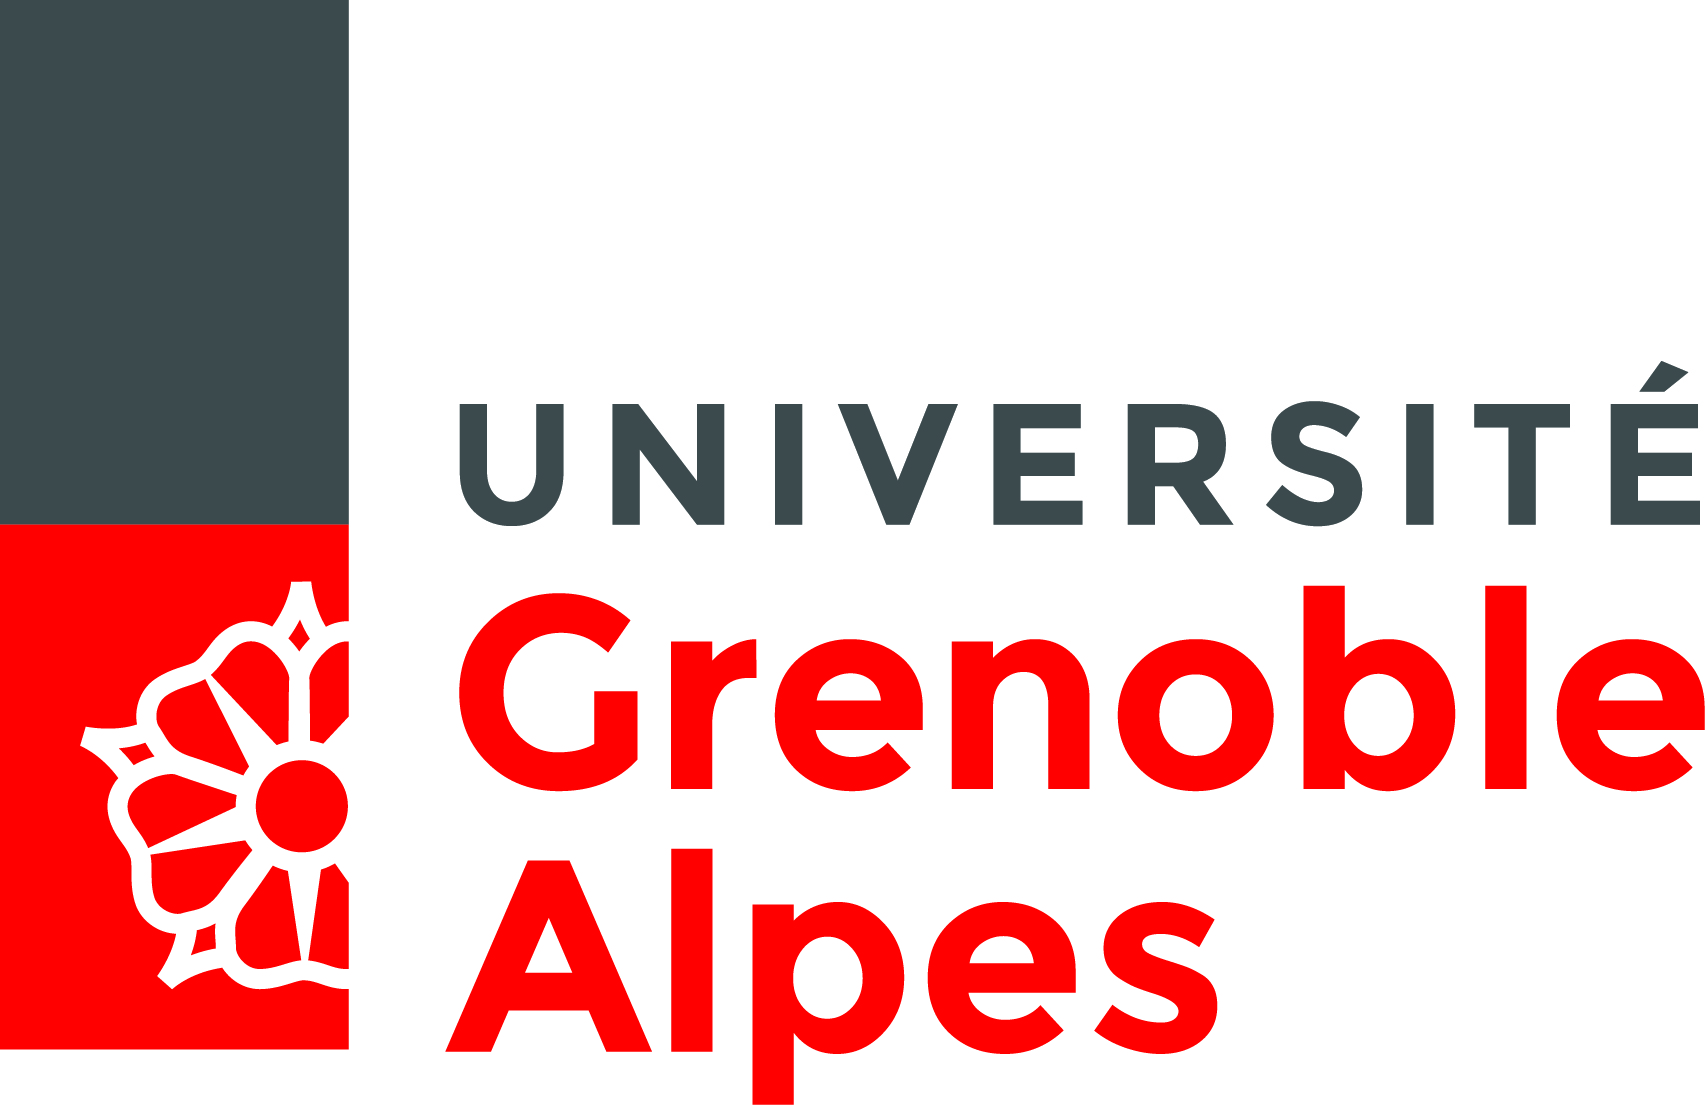 formation a distance universite grenoble